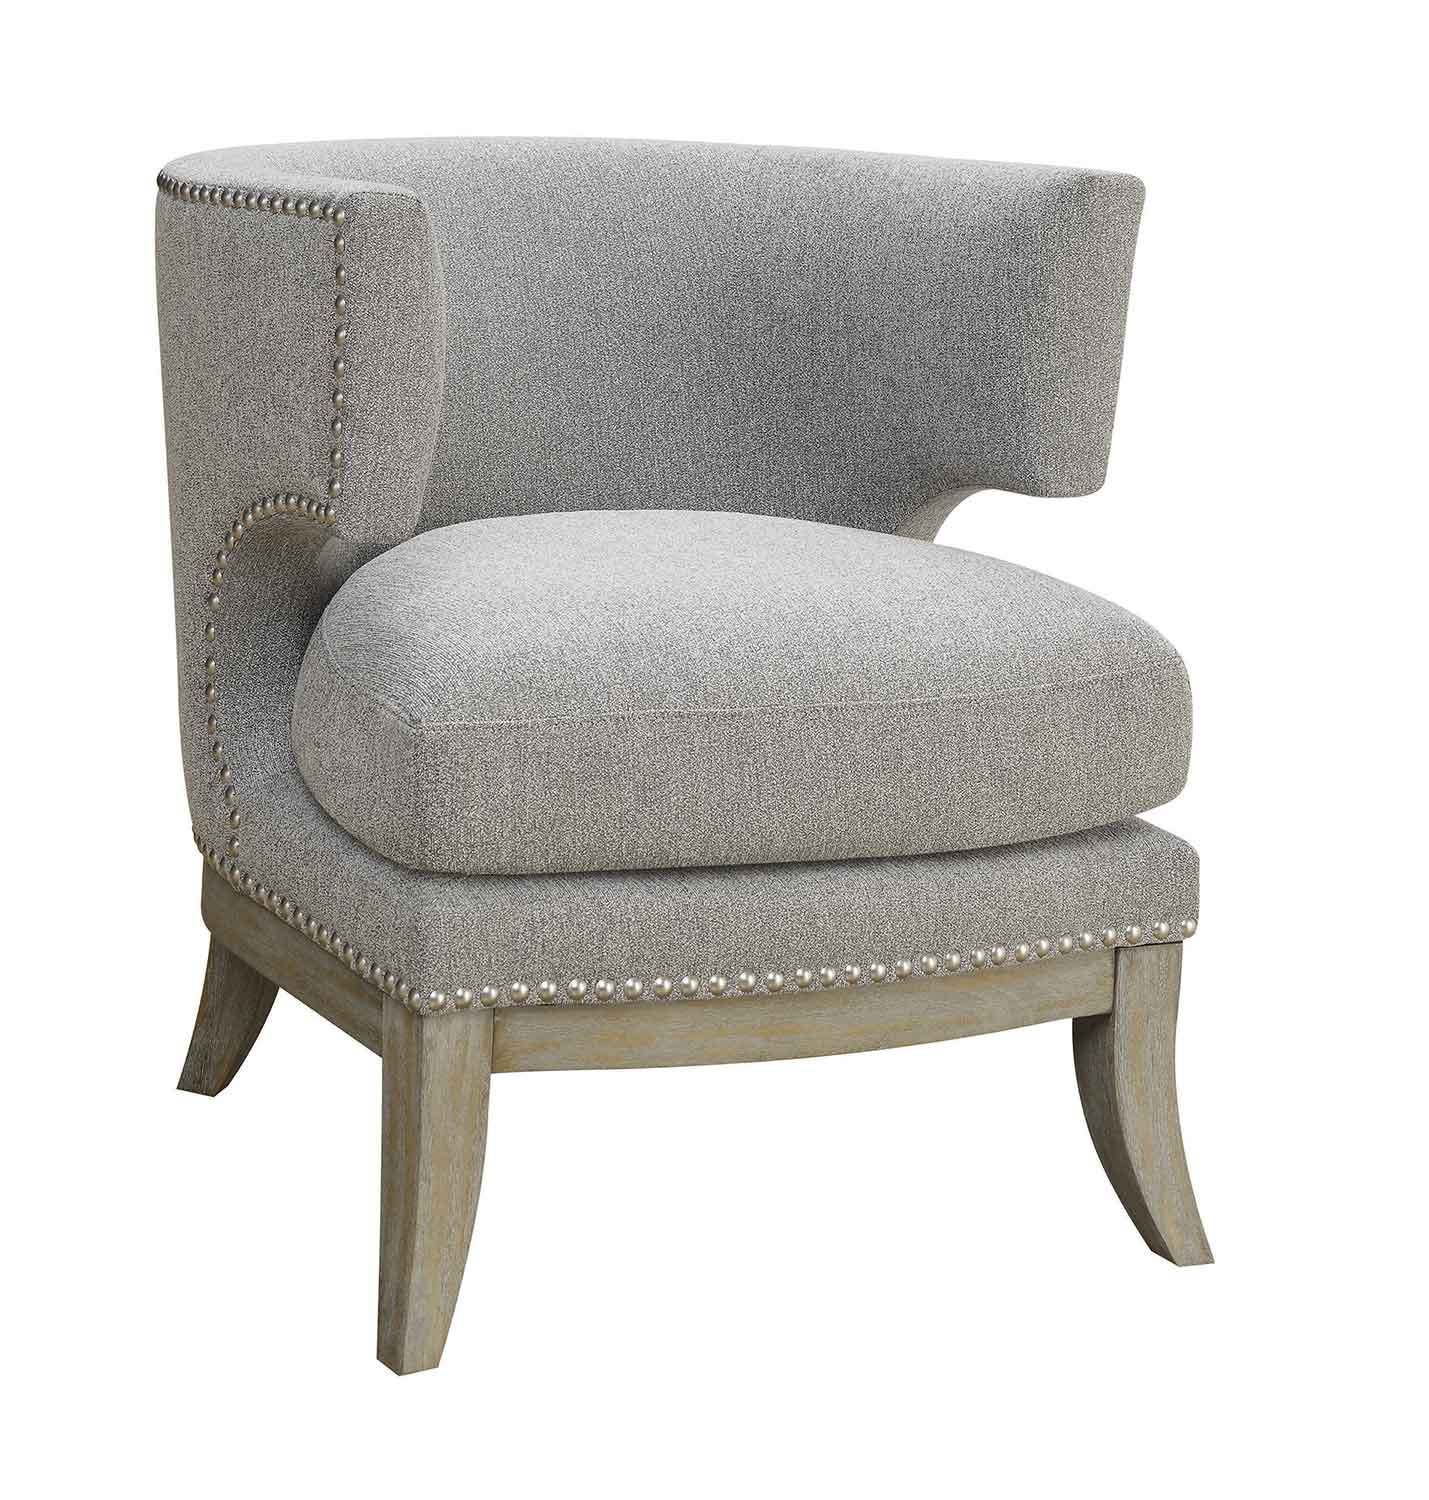 Coaster 902560 Accent Chair - Grey